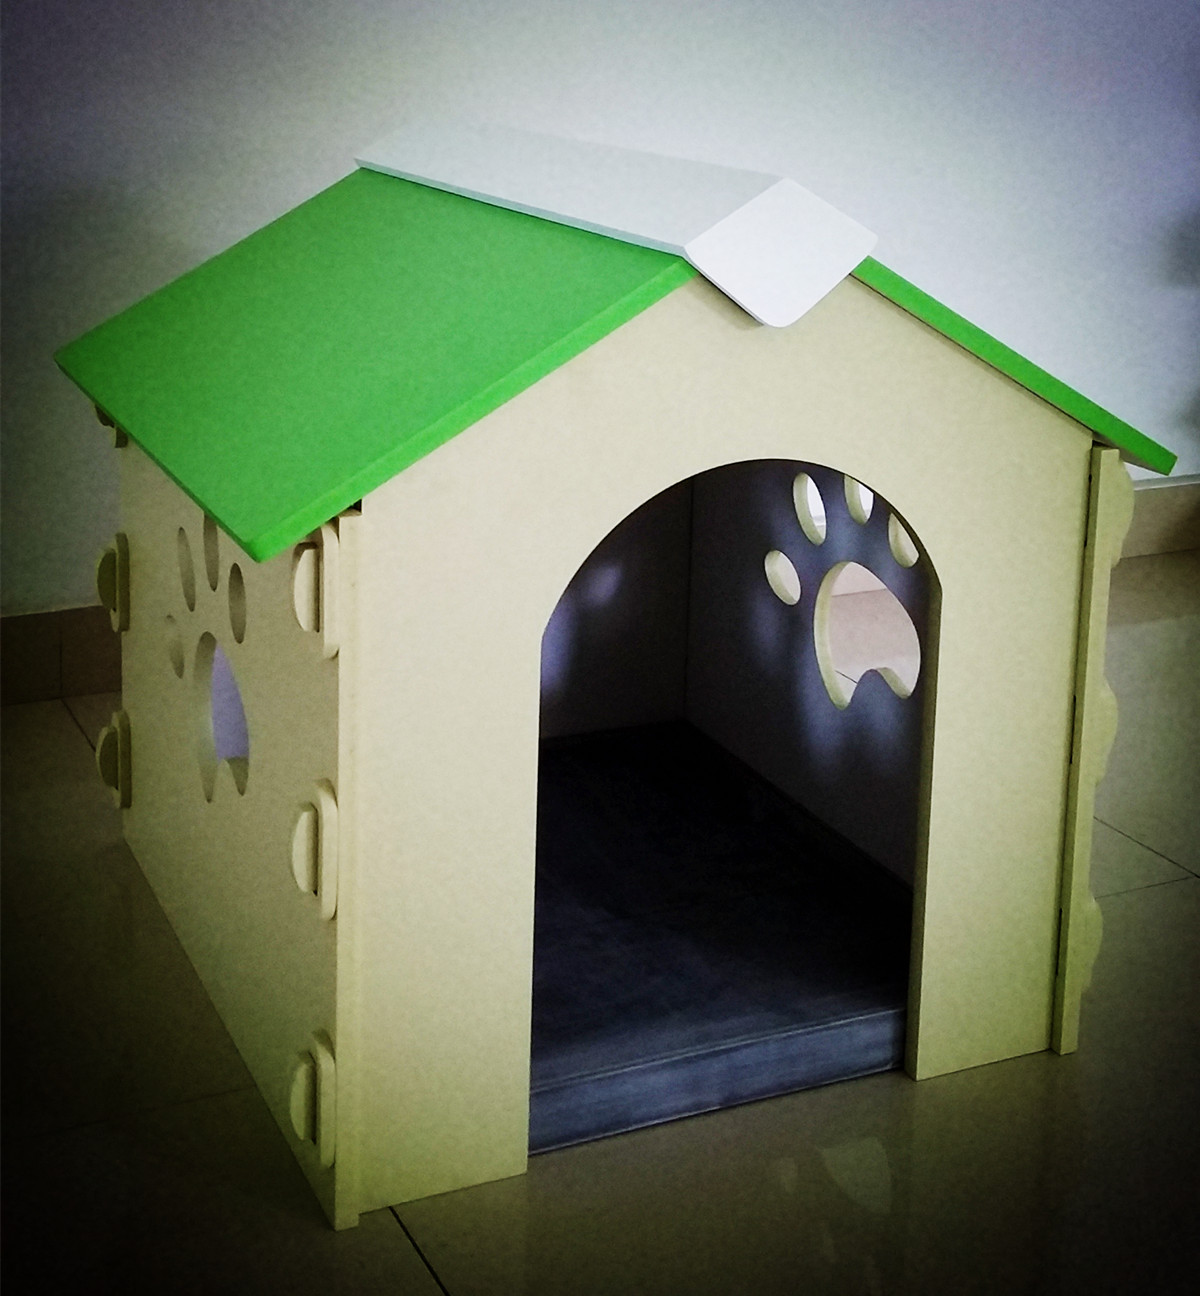 In/out door plastic dog house